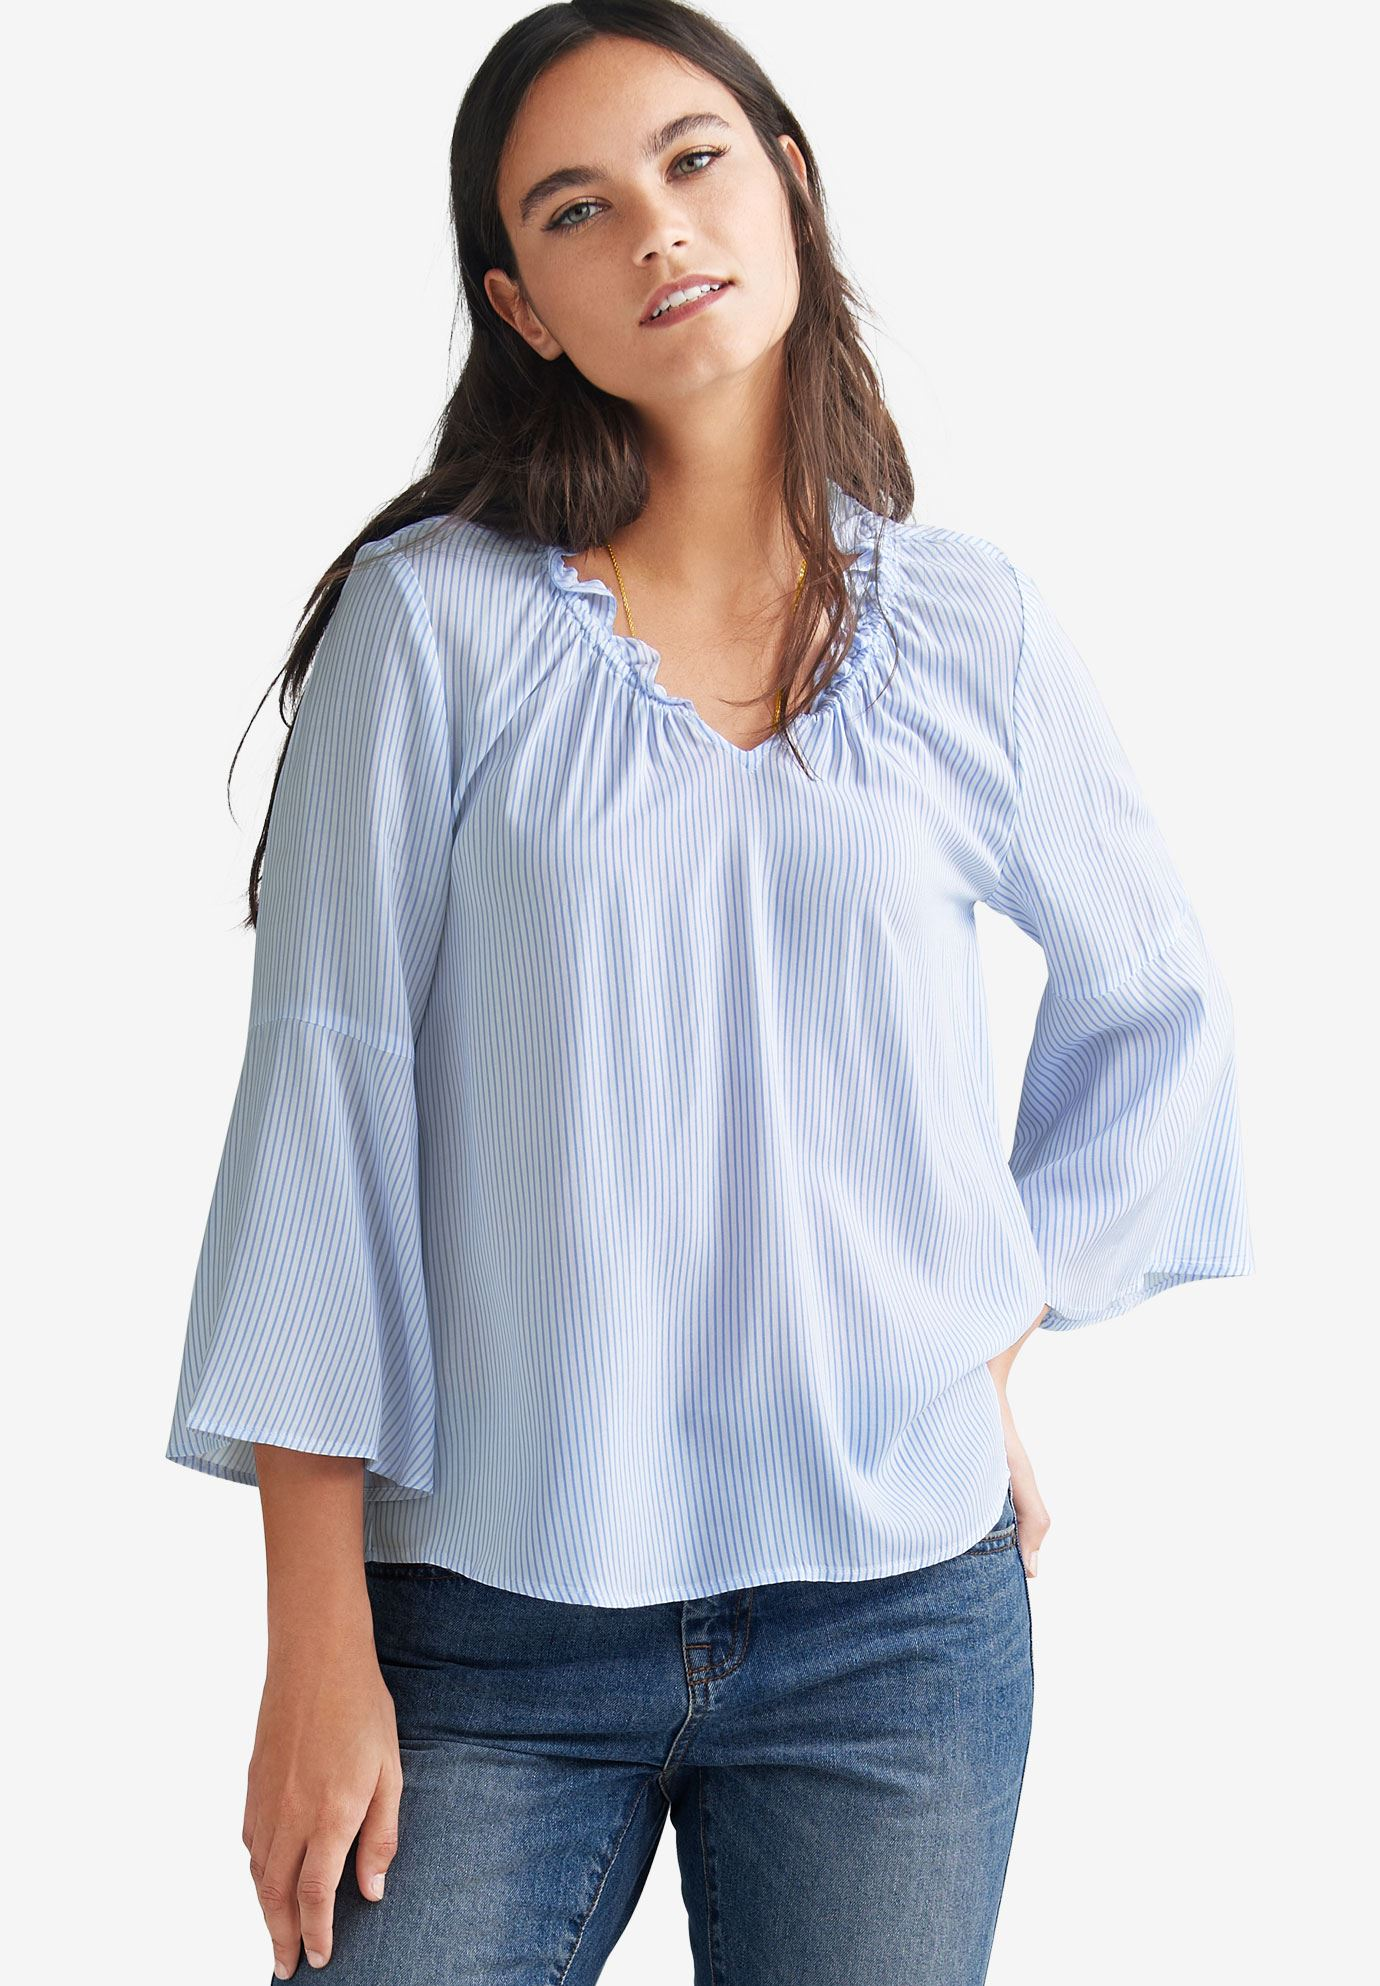 Bell Sleeve Blouse By Ellos Plus Size Blouses Shirts Ellos